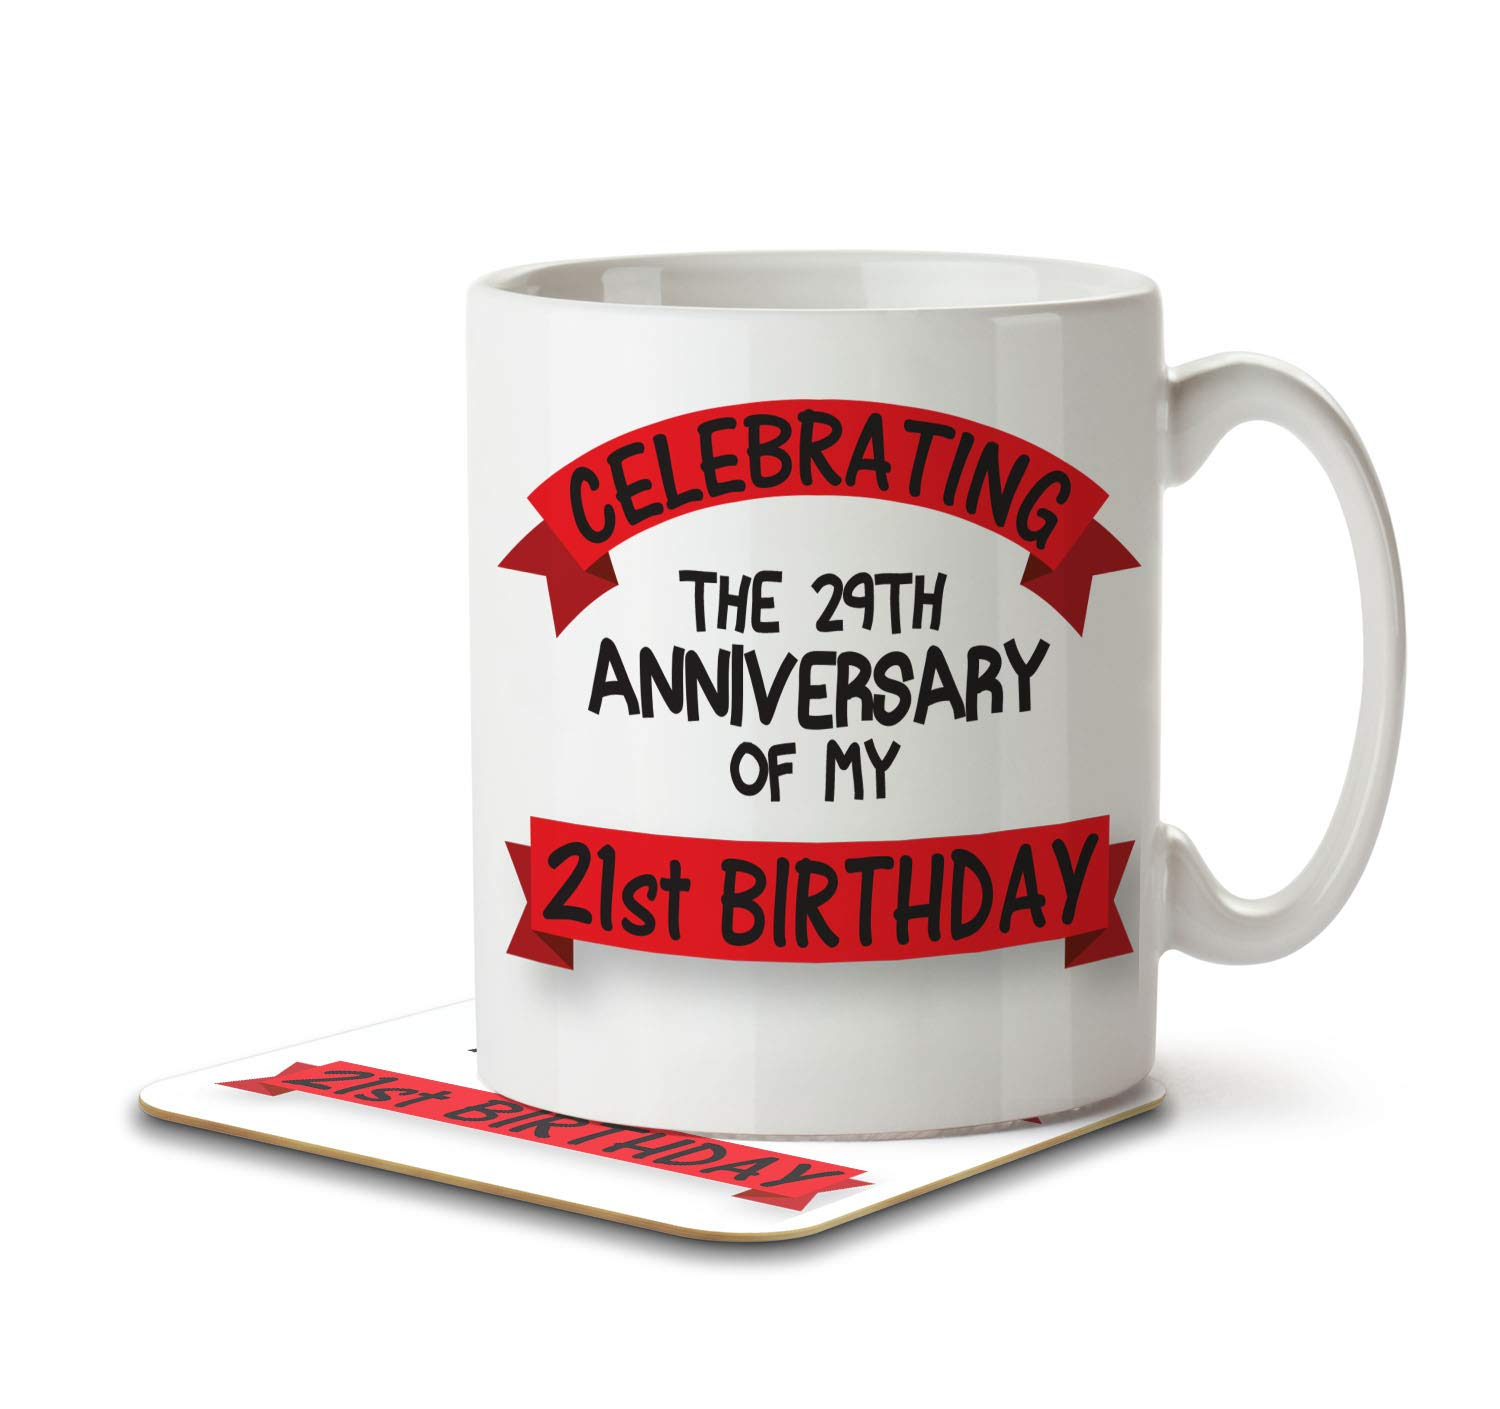 Celebrating the 29th Anniversary of my 21st Birthday! - Mug and Coaster By Inky Penguin The Inky Penguin